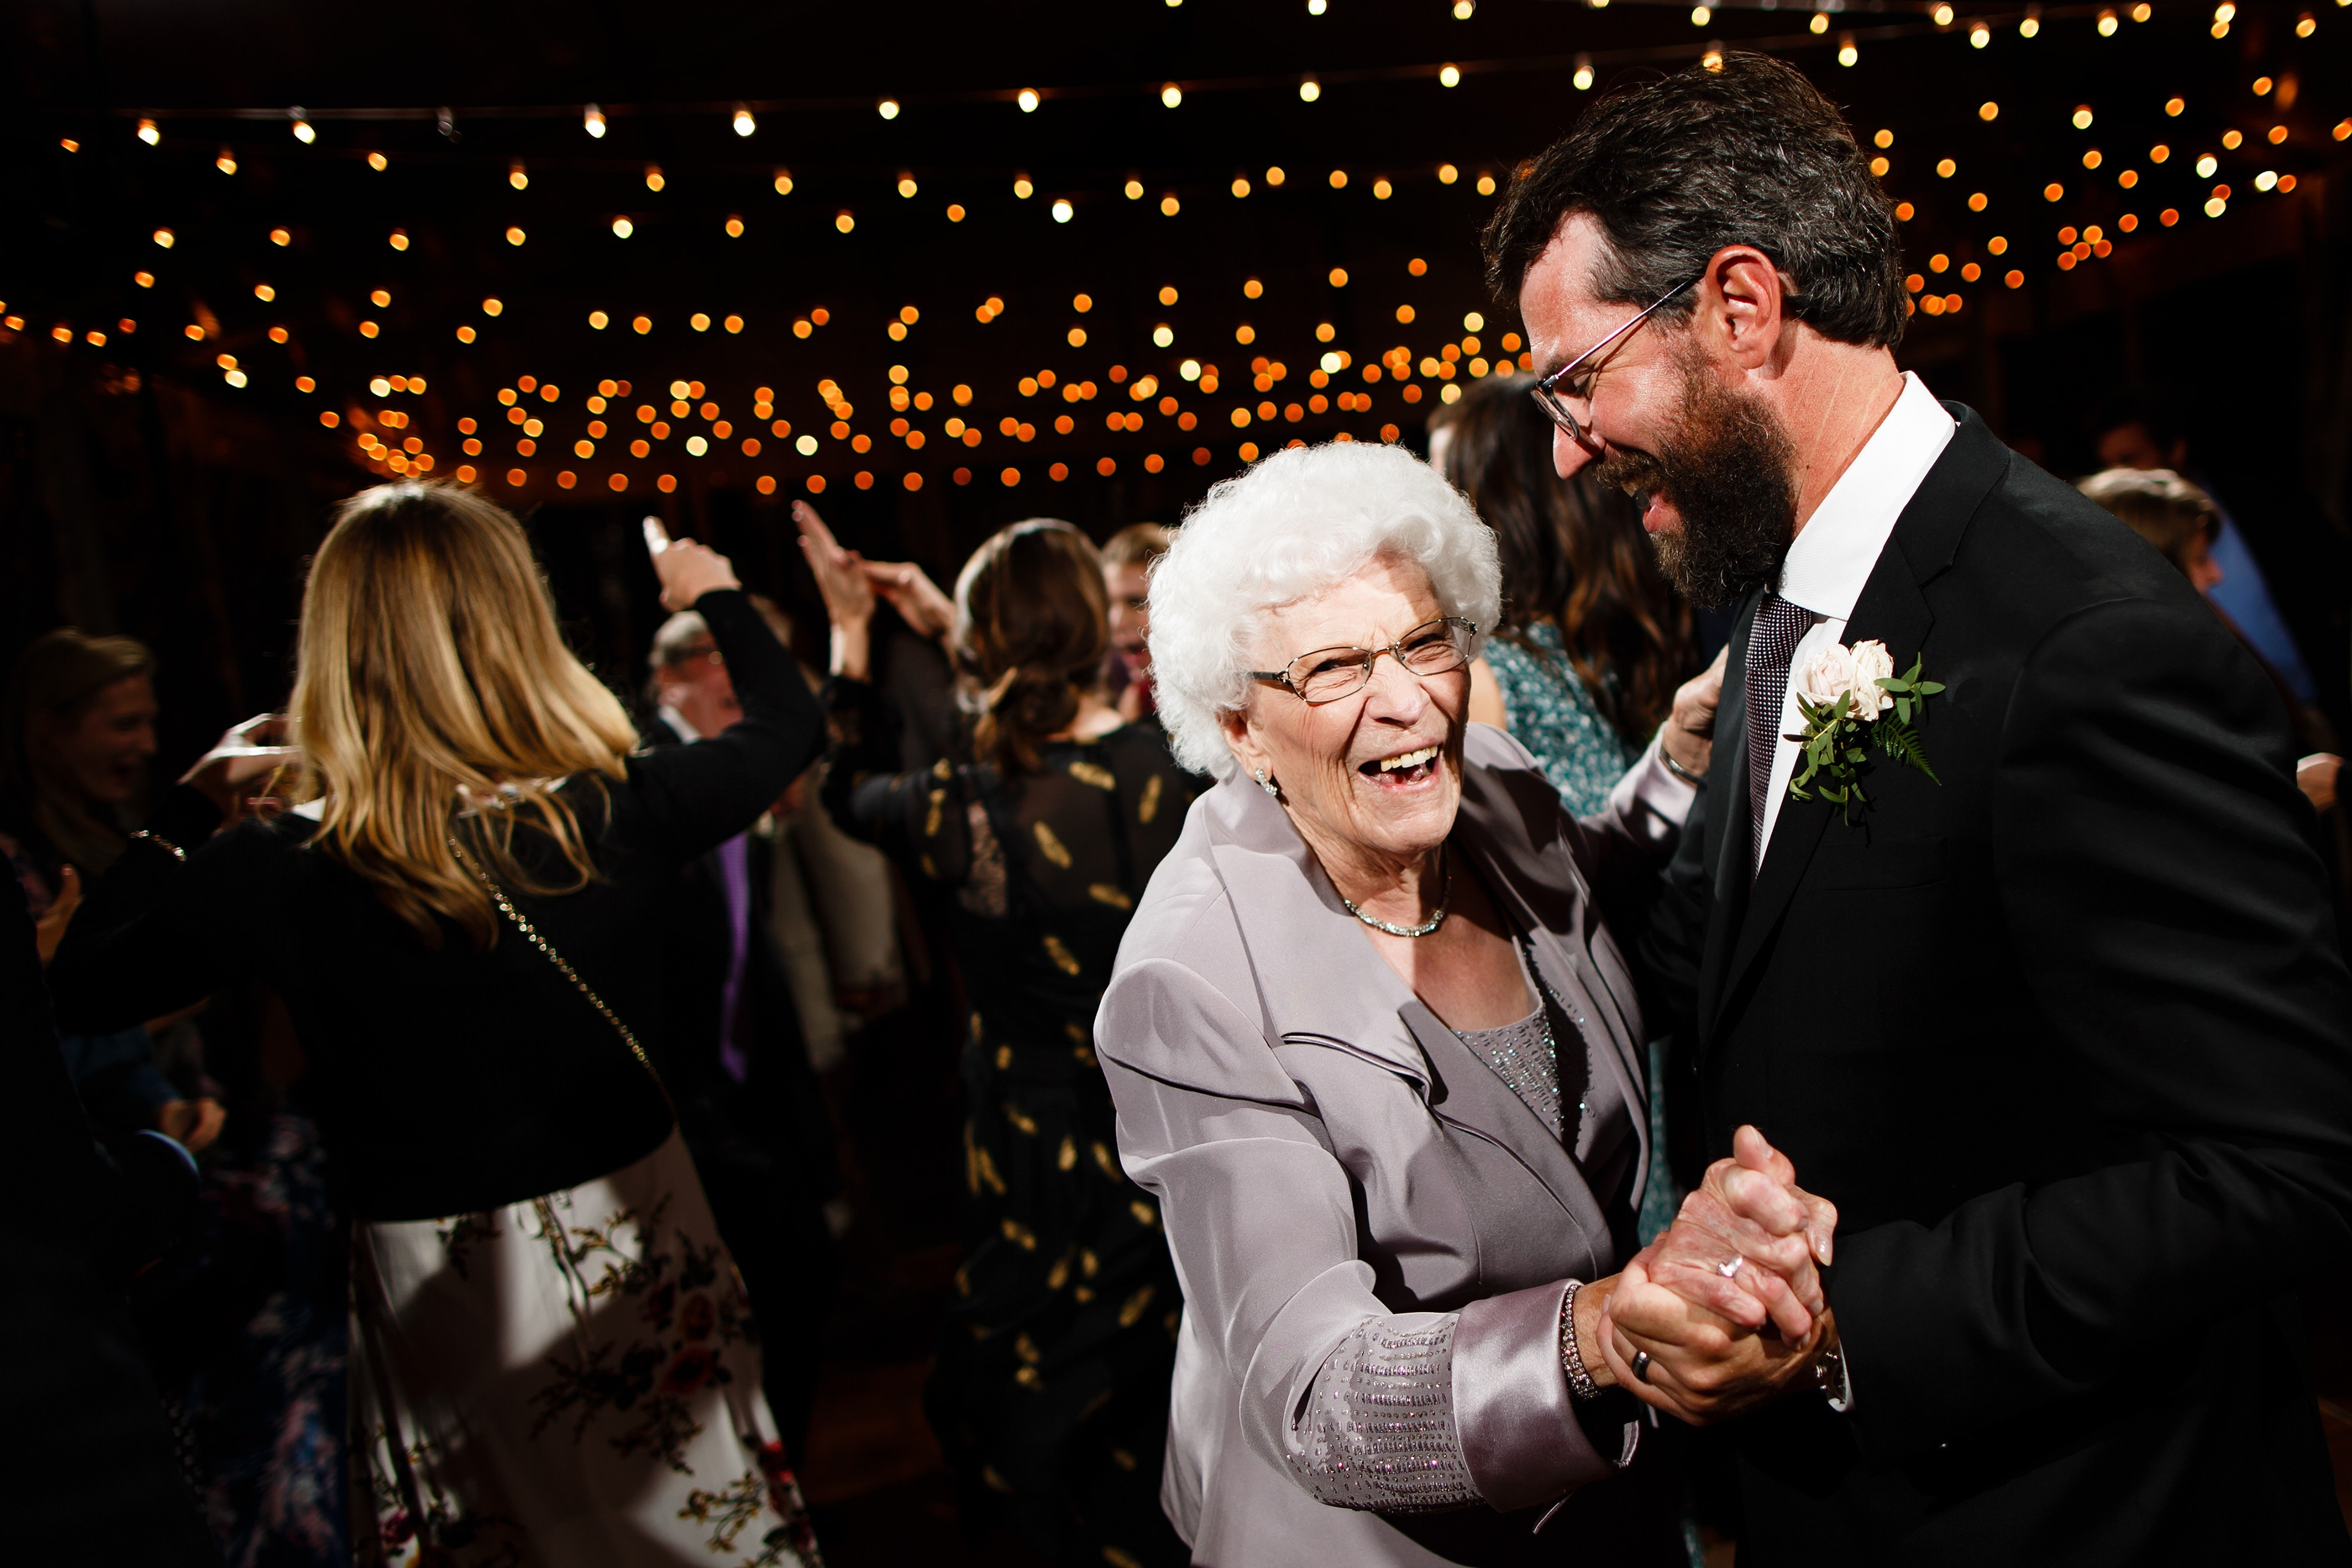 The groom dances with his grandmother